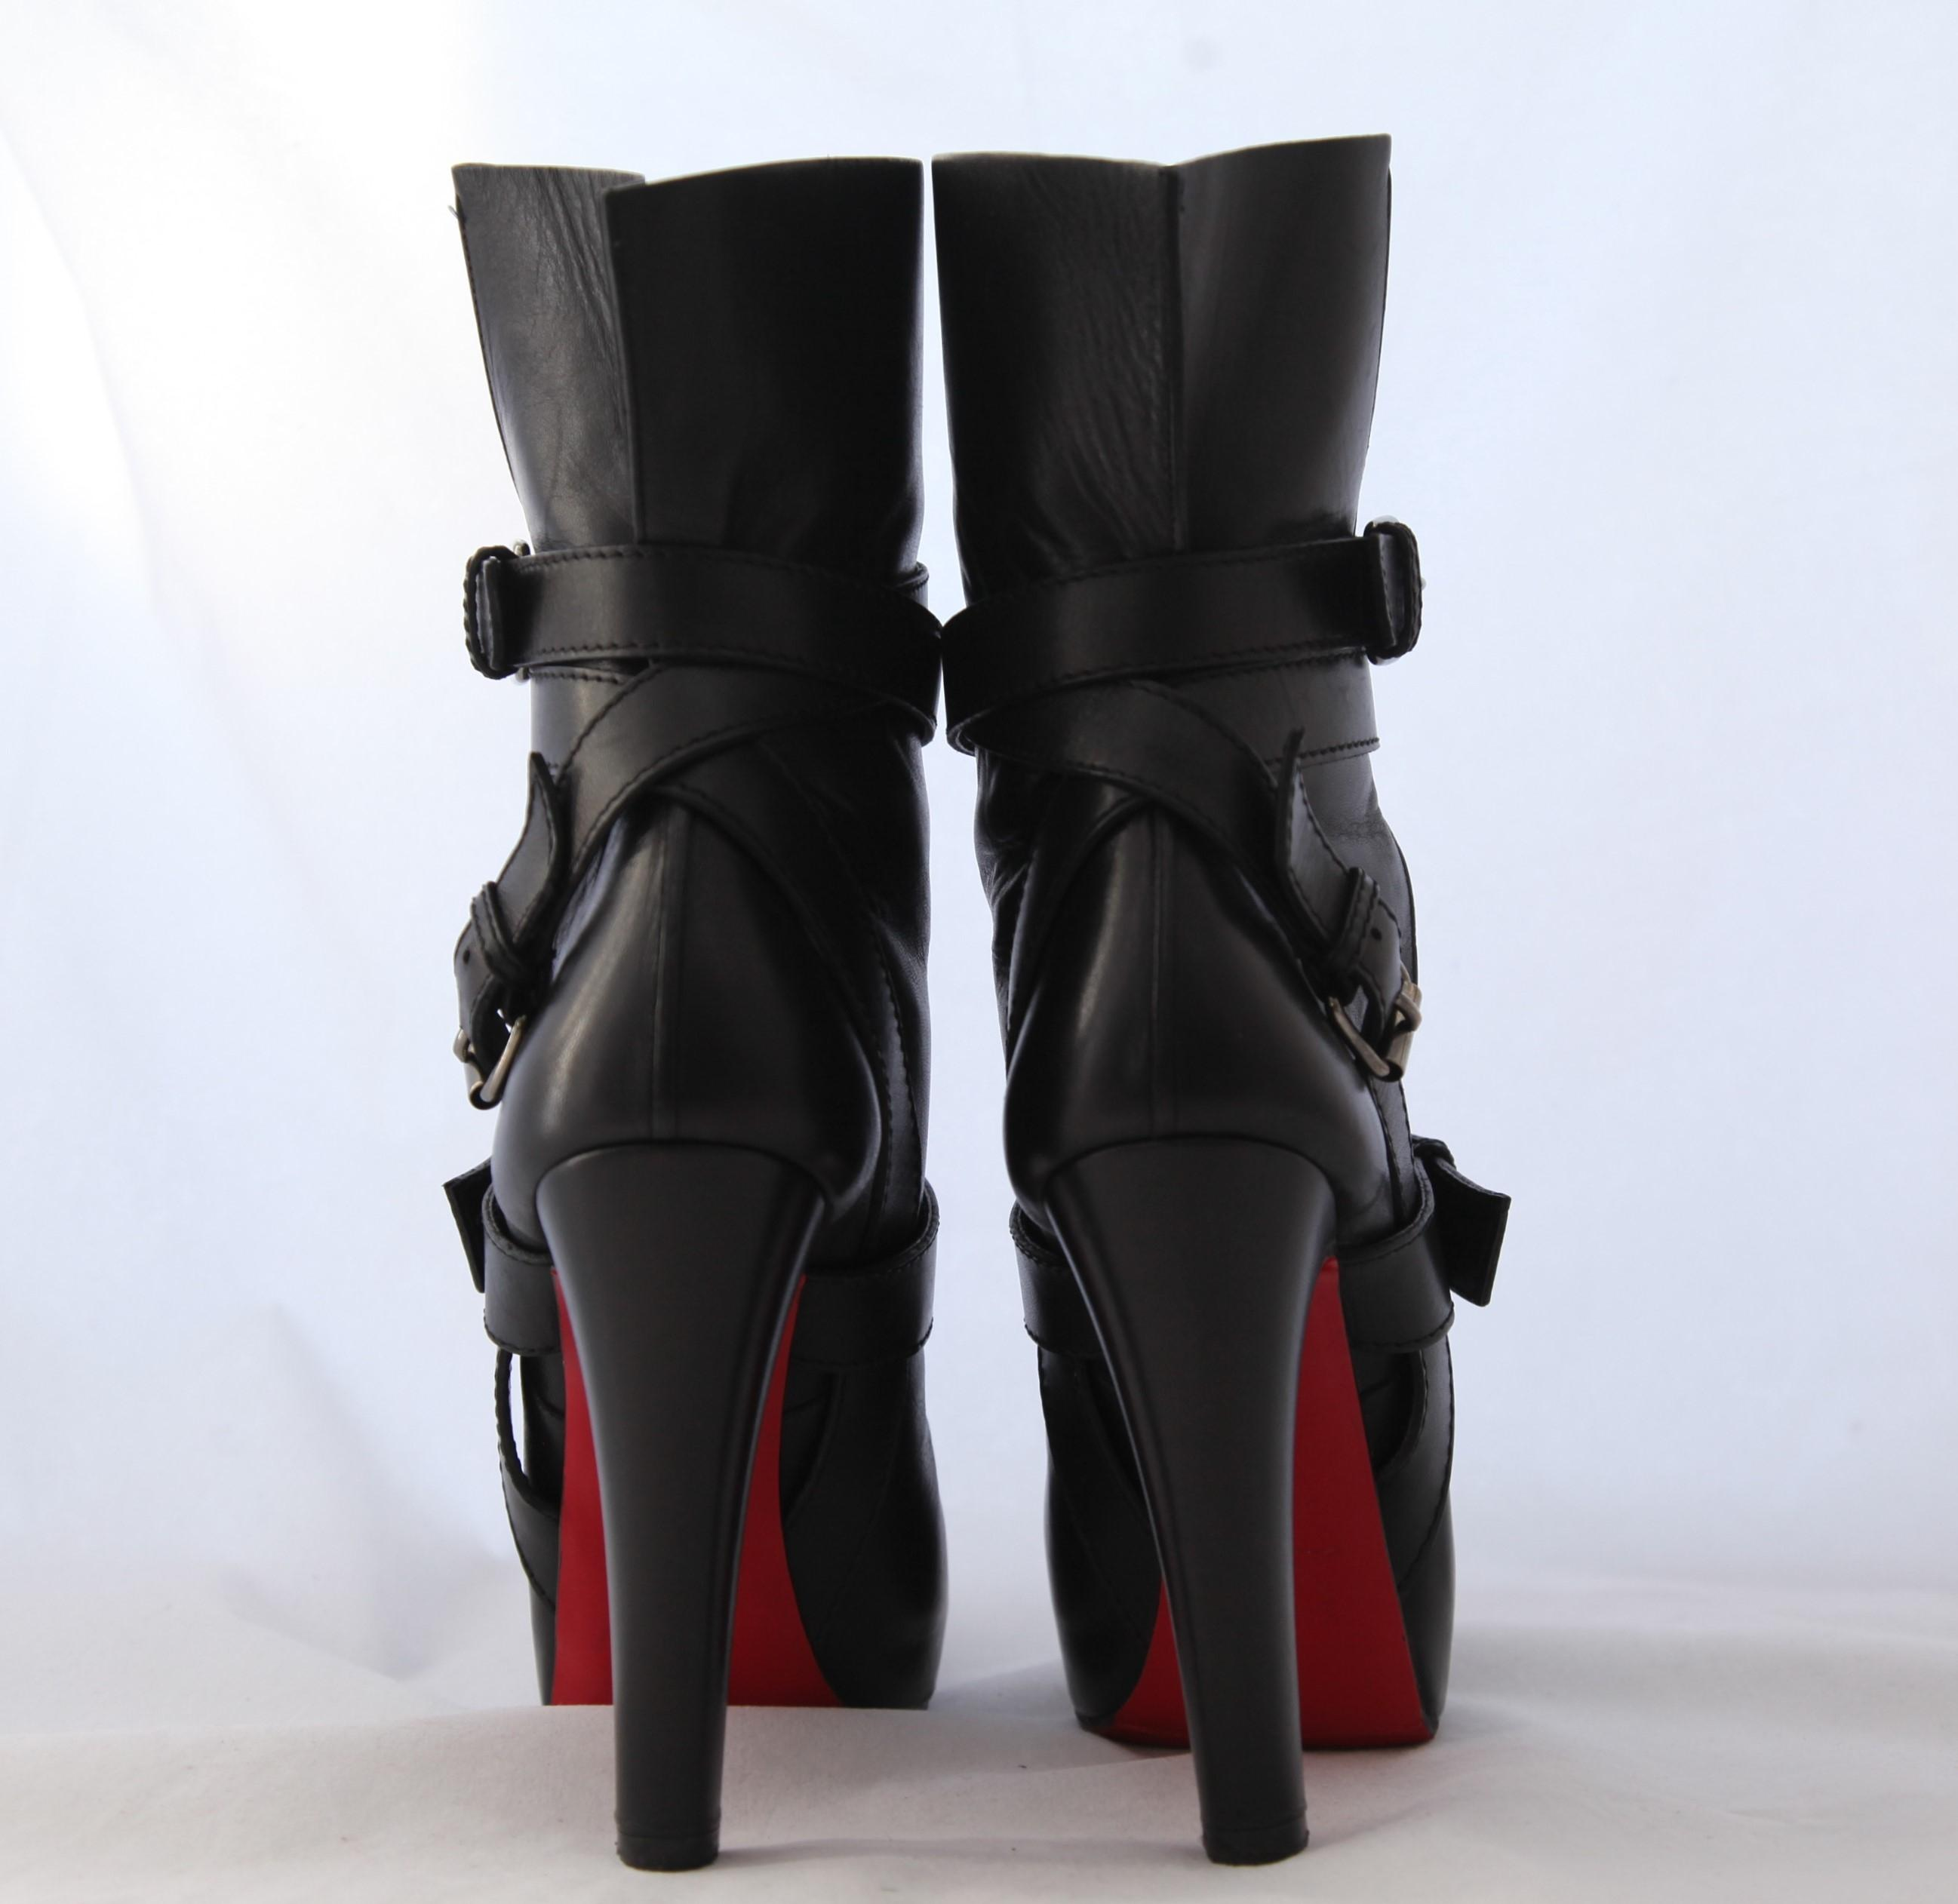 6ab6f88b777 ... Christian Christian Christian Louboutin Black Guerriere High Heel Lady  Fashion 38.5italy Leather Platform Ankle Boots ...